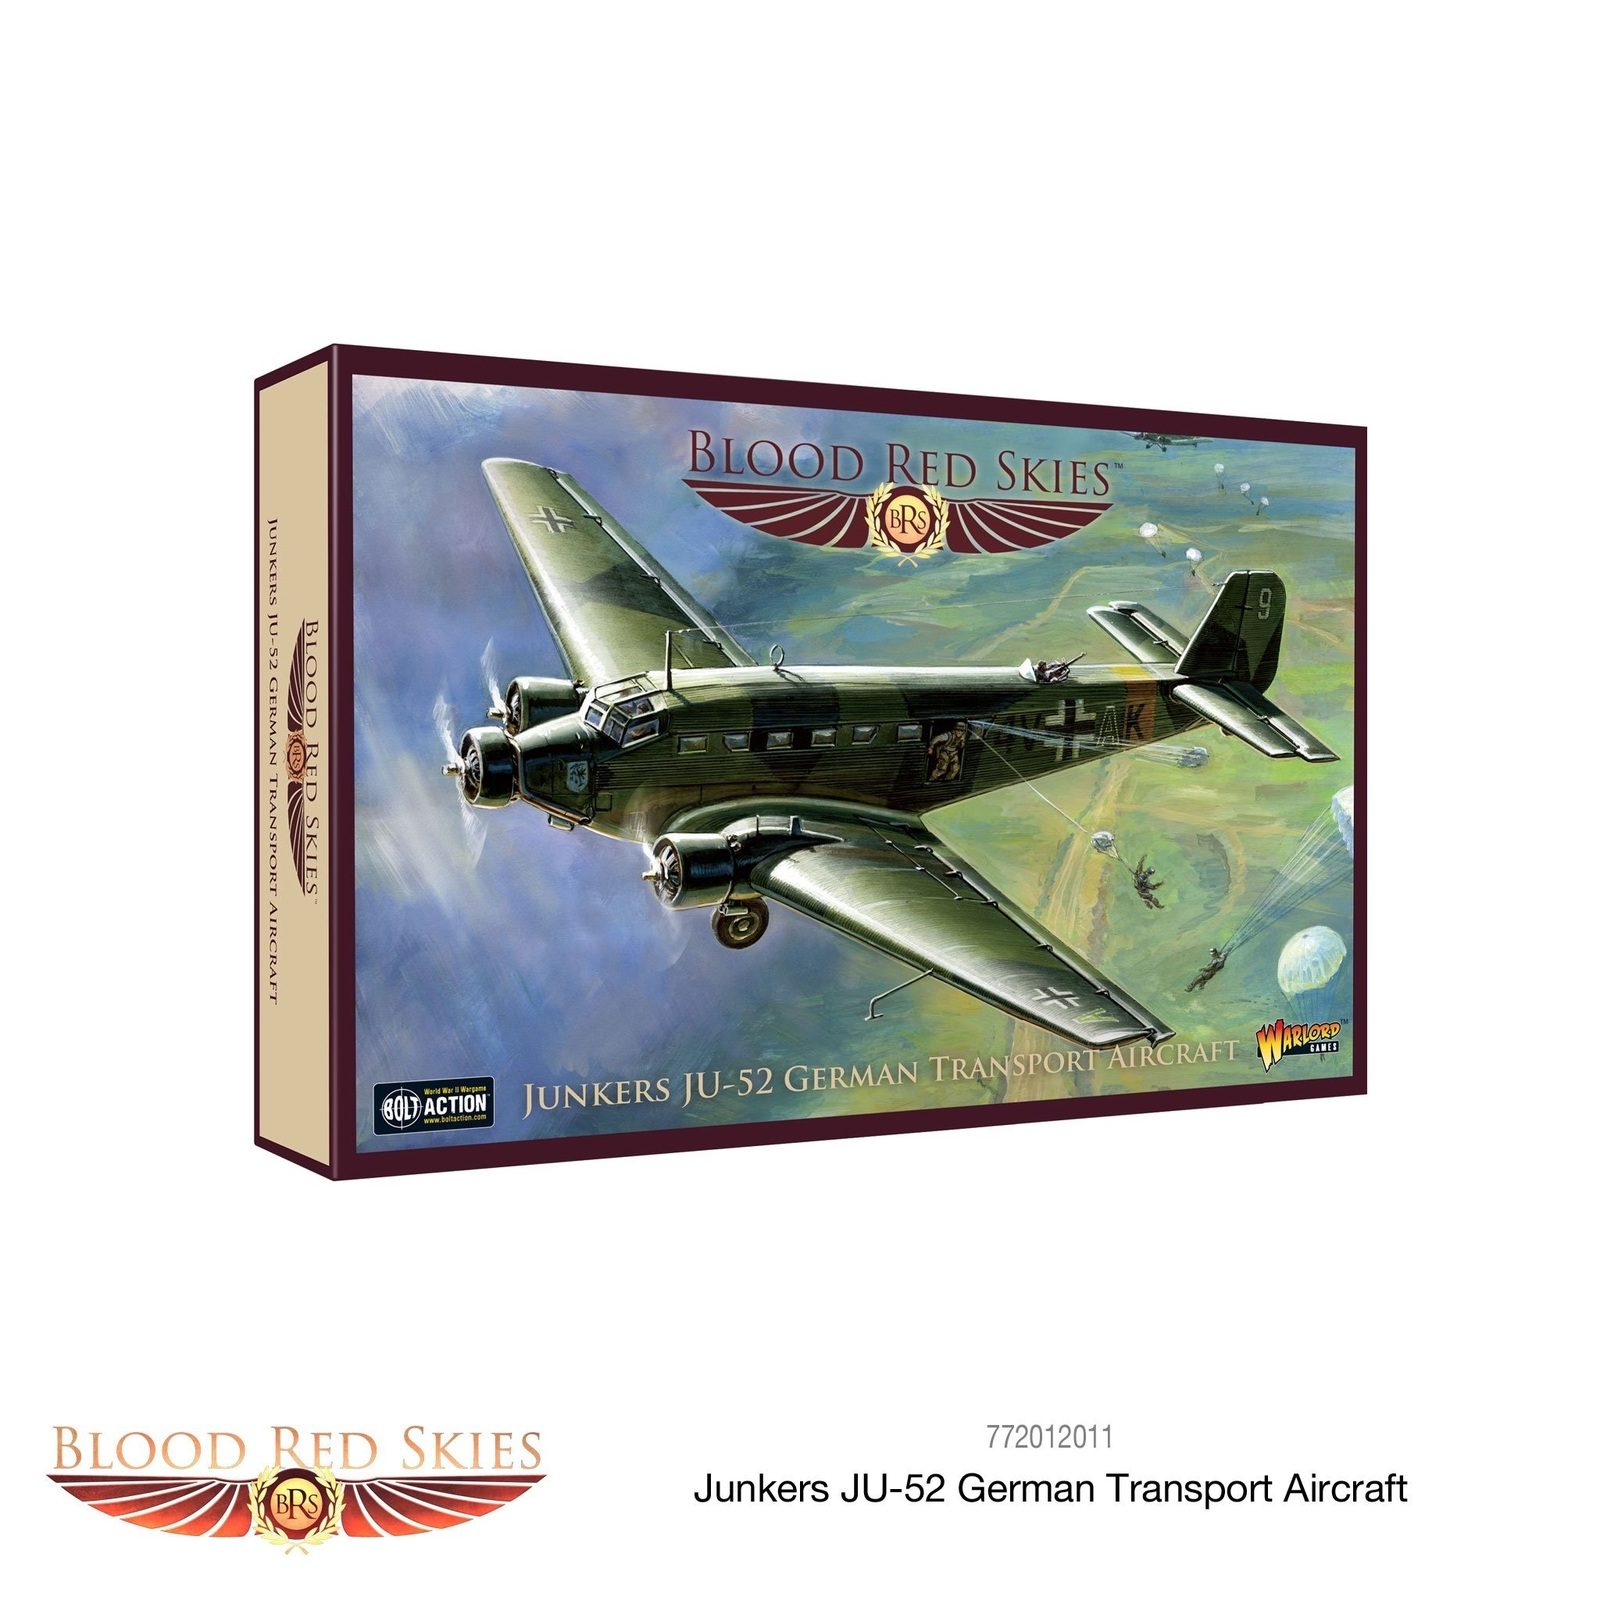 Blood Red Skies: Junkers JU-52 image